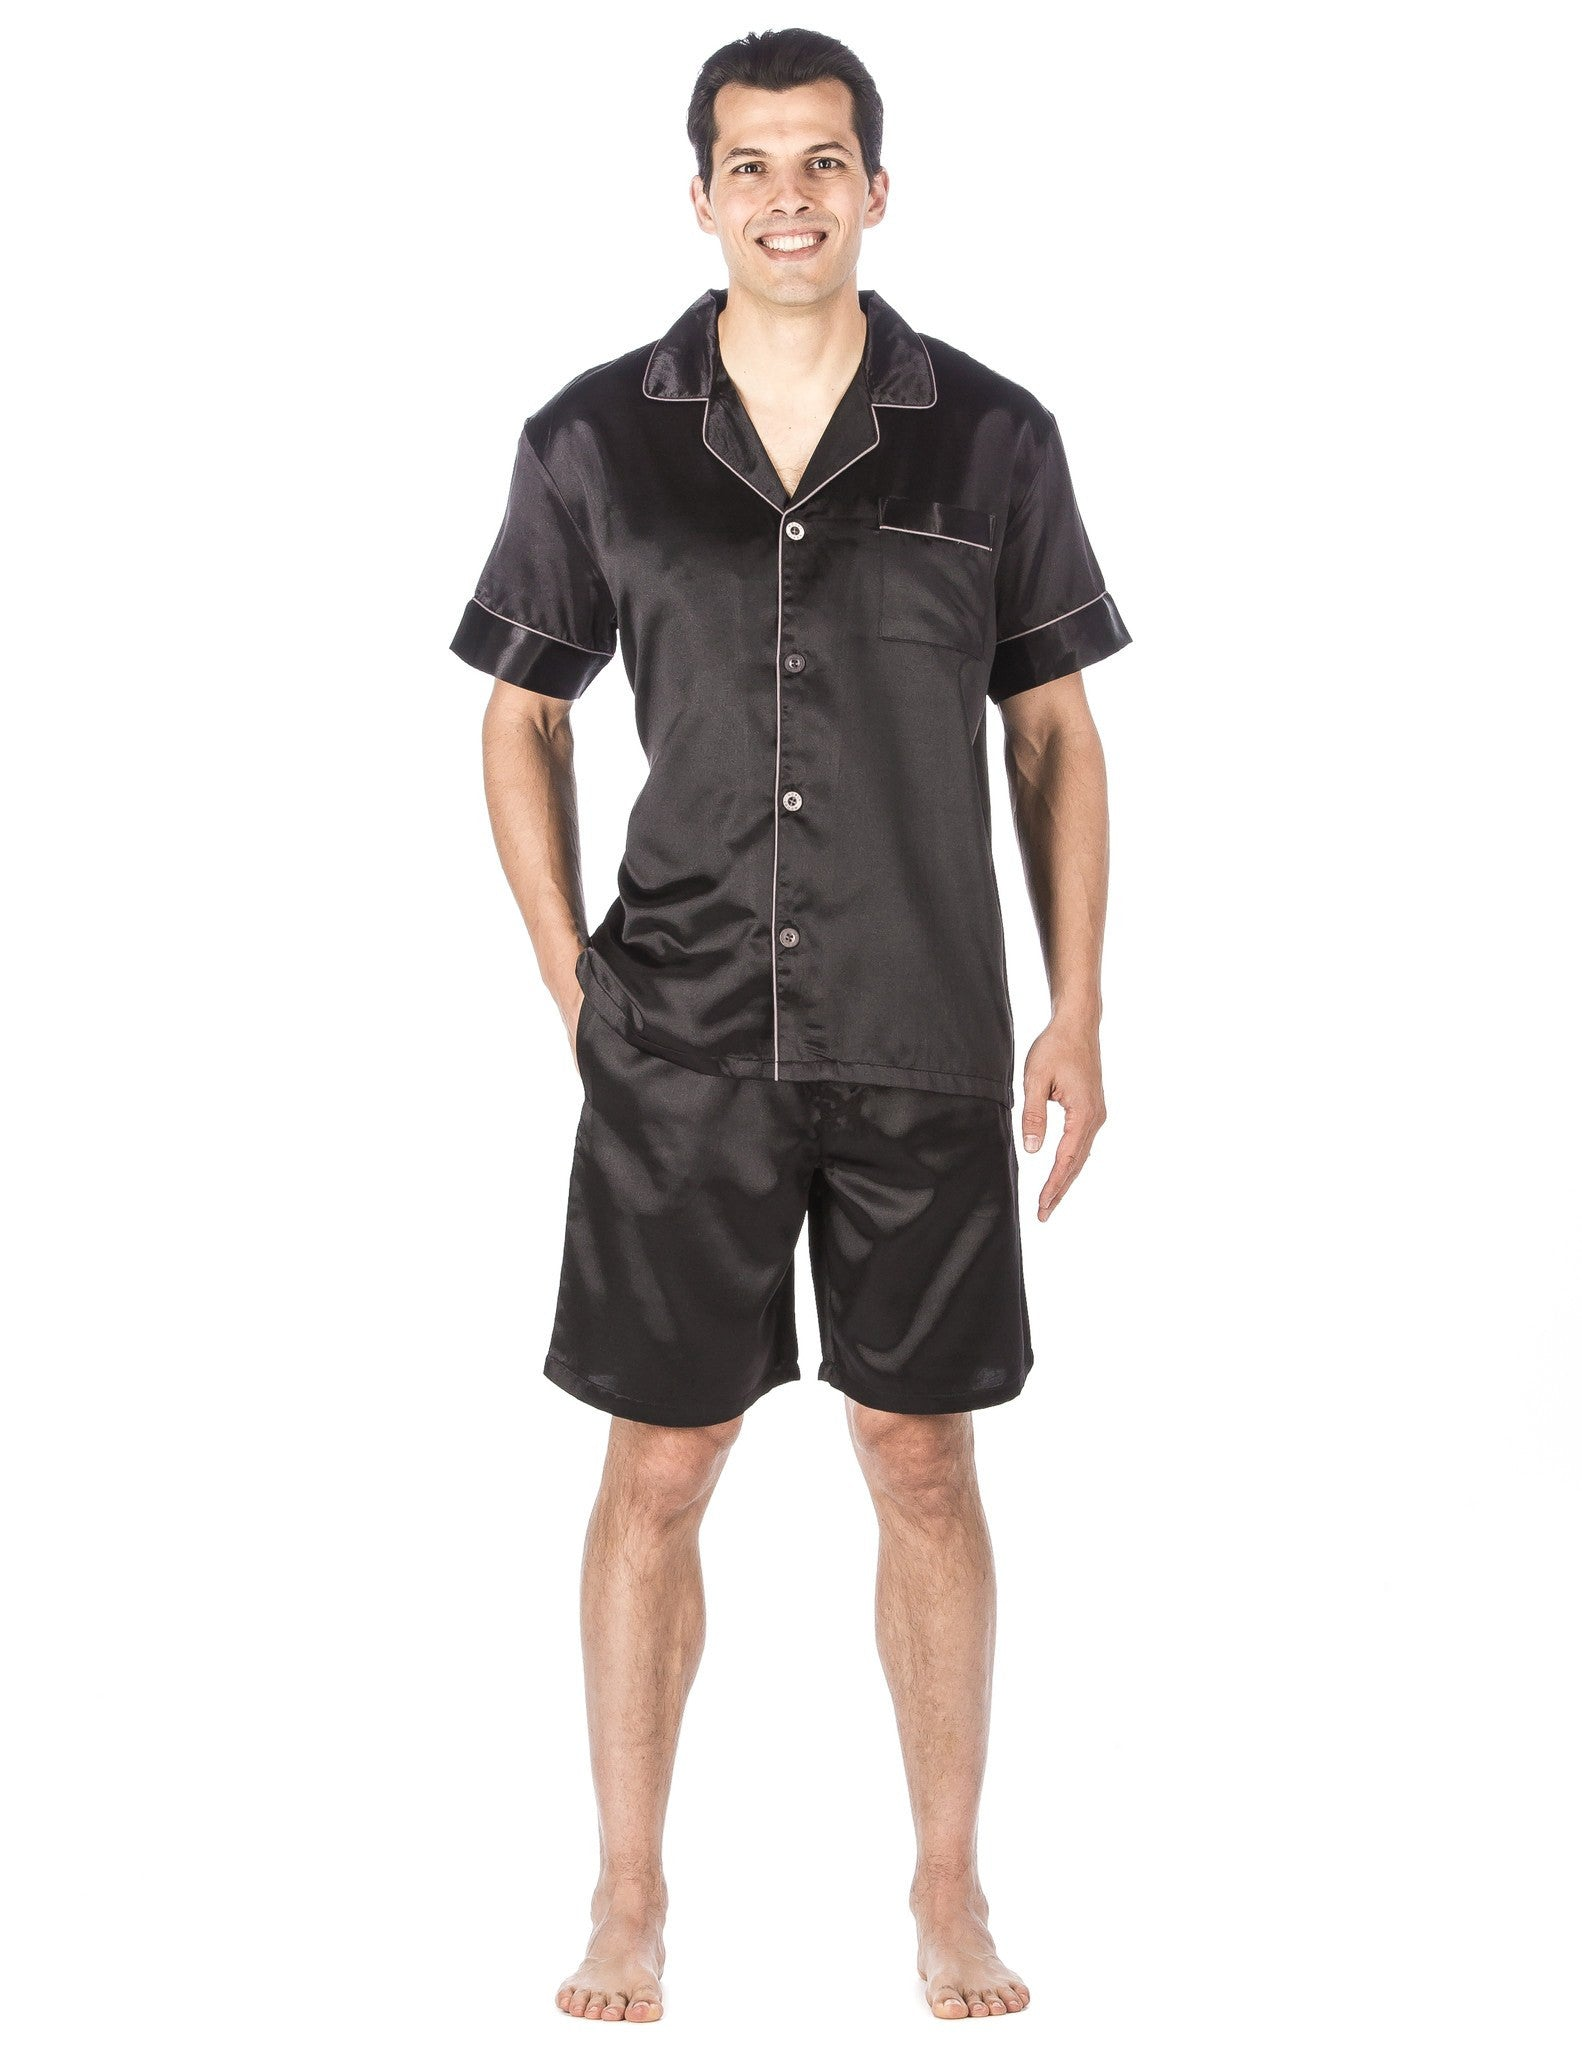 Men's Premium Satin Short Pajama Set